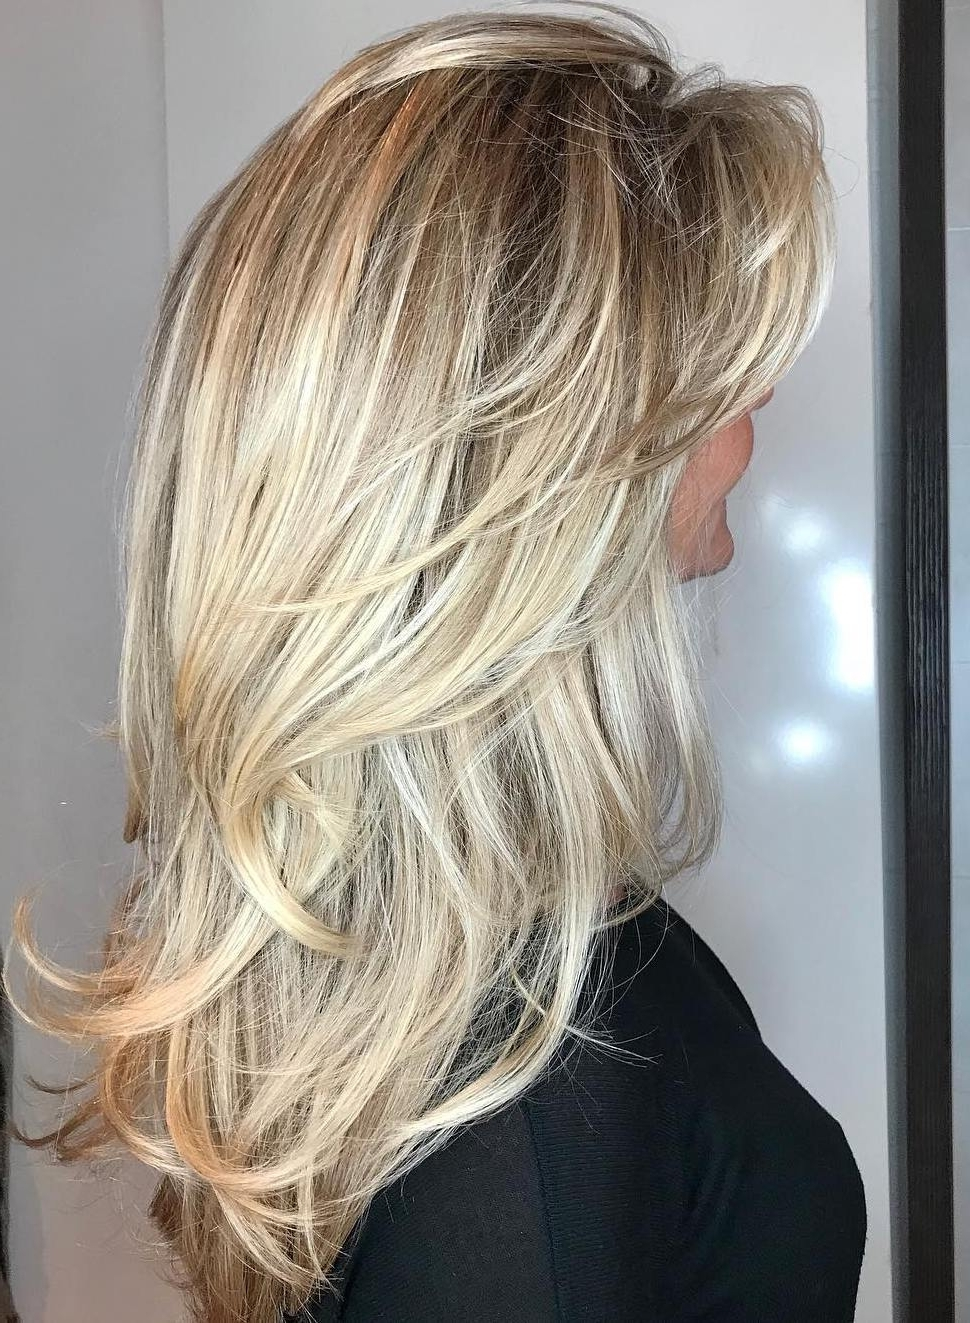 Most Current Casual Bright Waves Blonde Hairstyles With Bangs Within 50 Cute Long Layered Haircuts With Bangs (View 10 of 20)